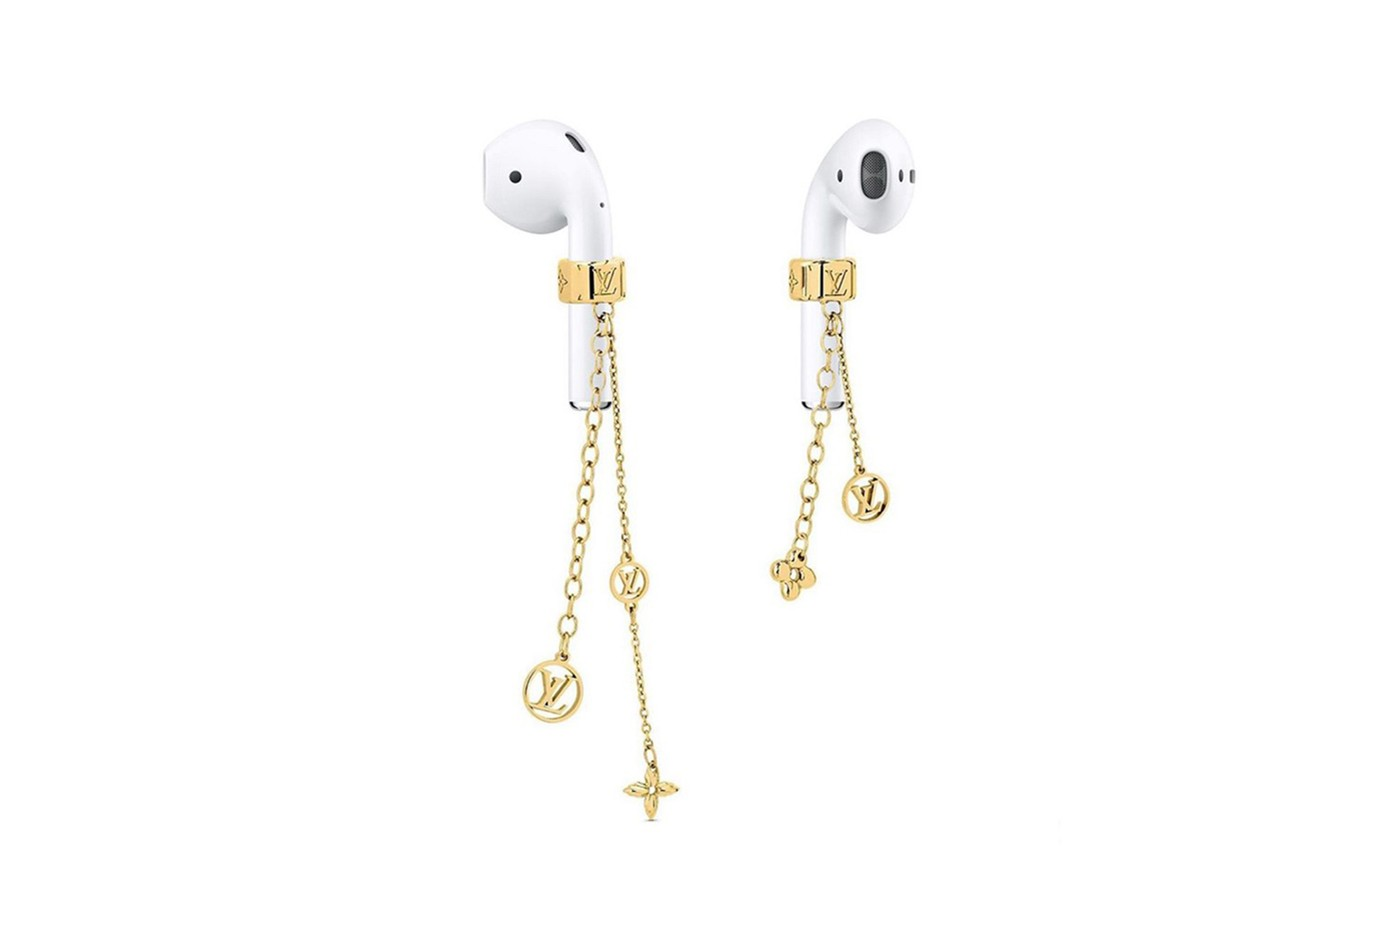 louis-vuitton-earphone-accessories-airpods-jewelry